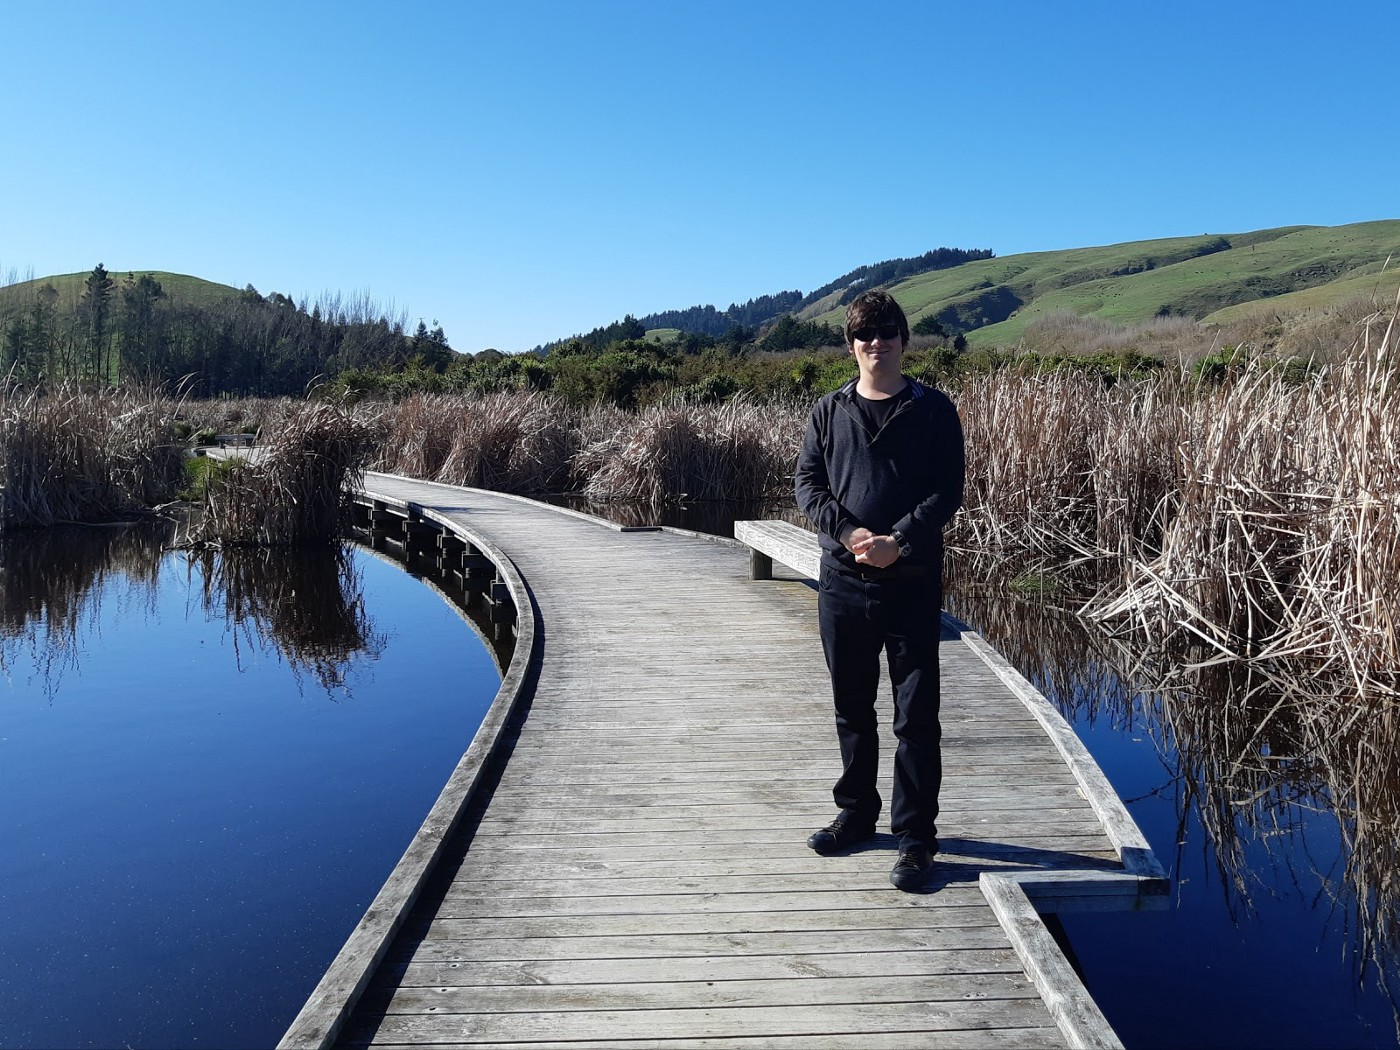 Jake standing on a boardwalk that goes through a wetland